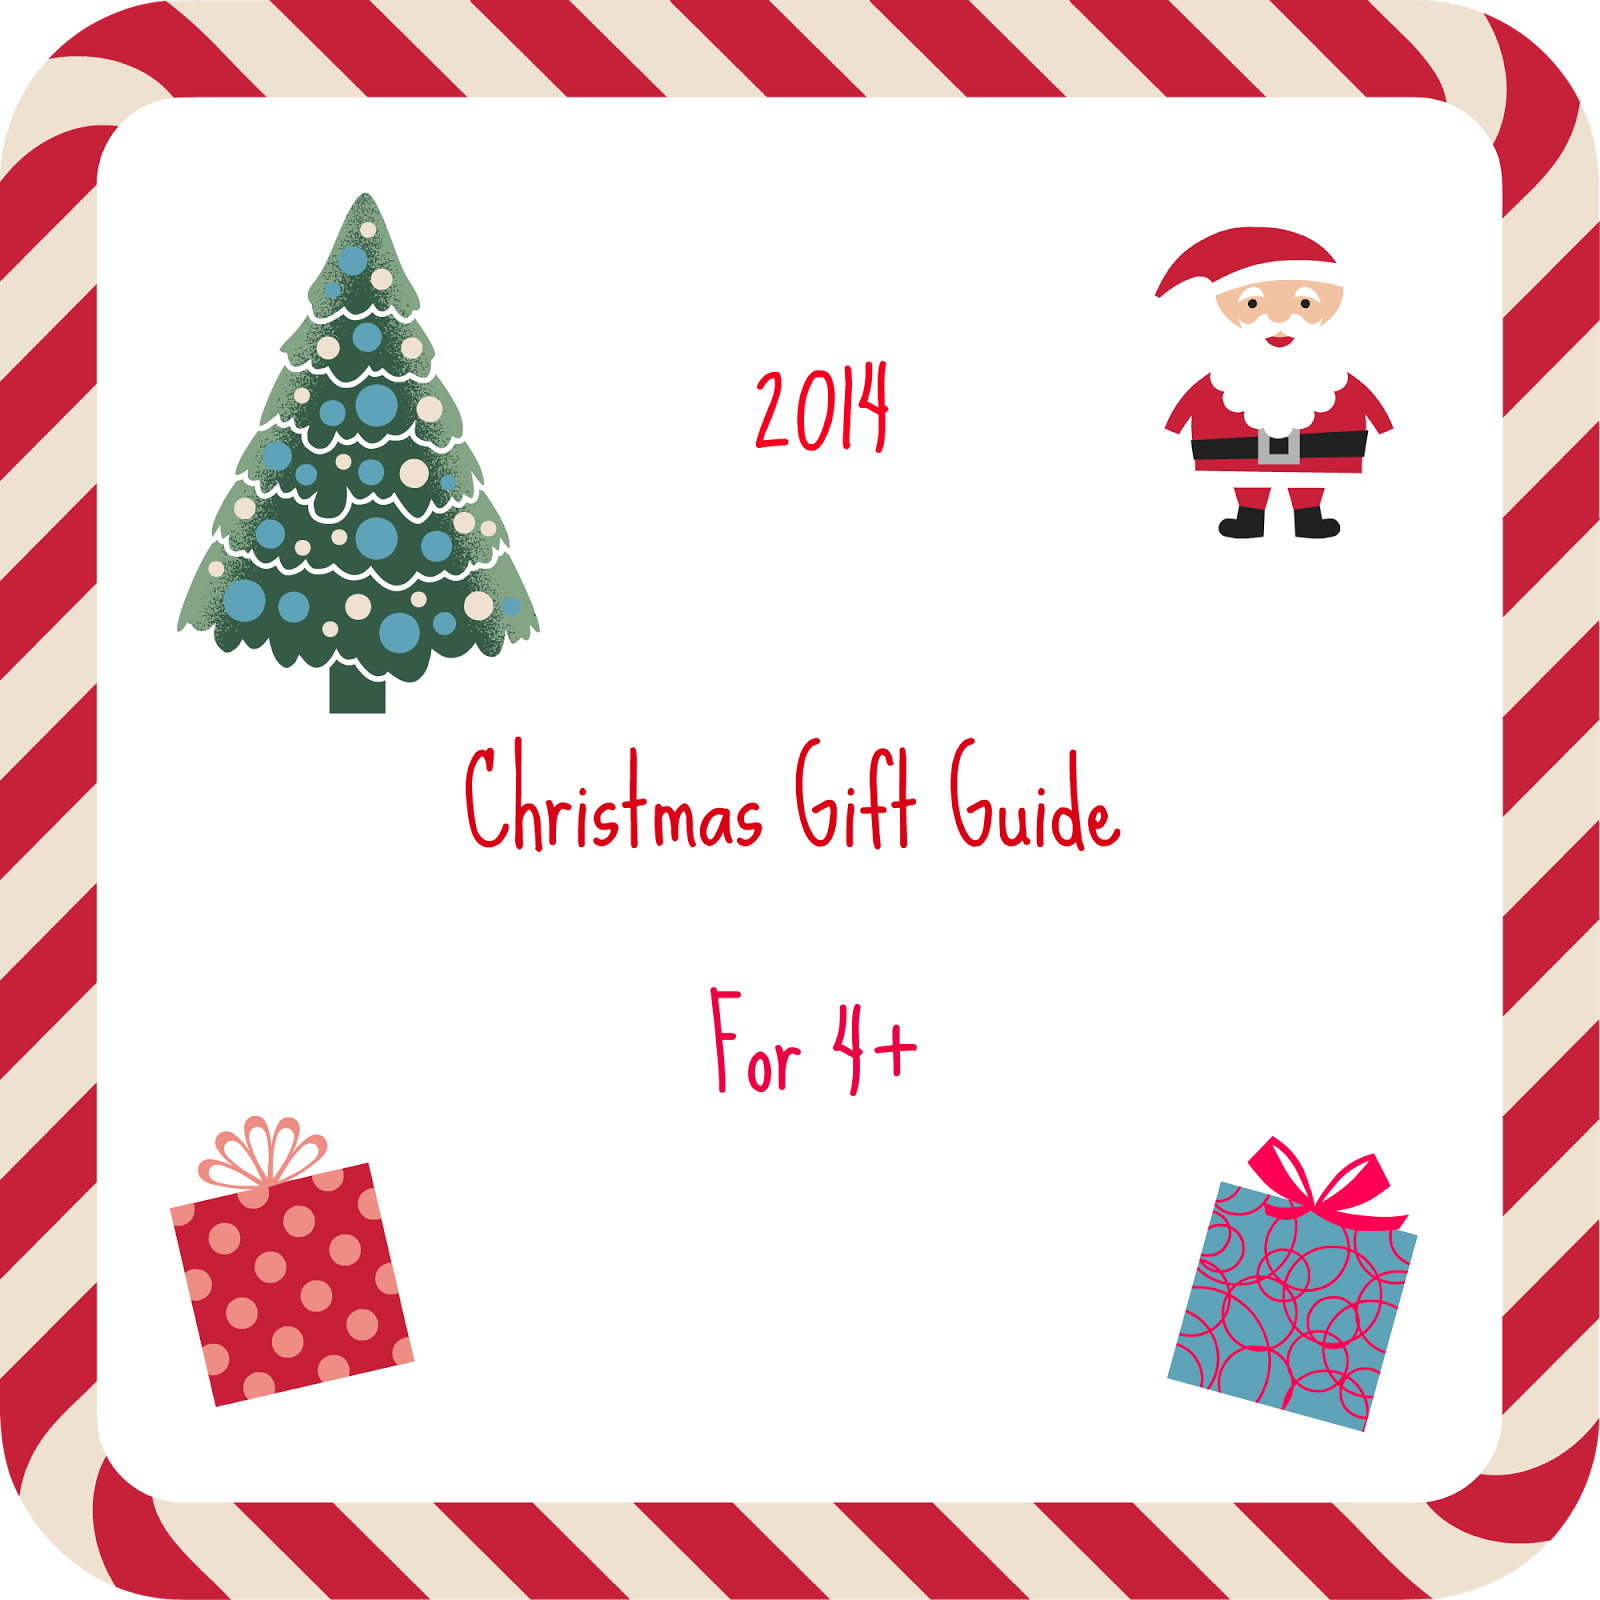 Christmas Gift Guide - Gifts for 4+